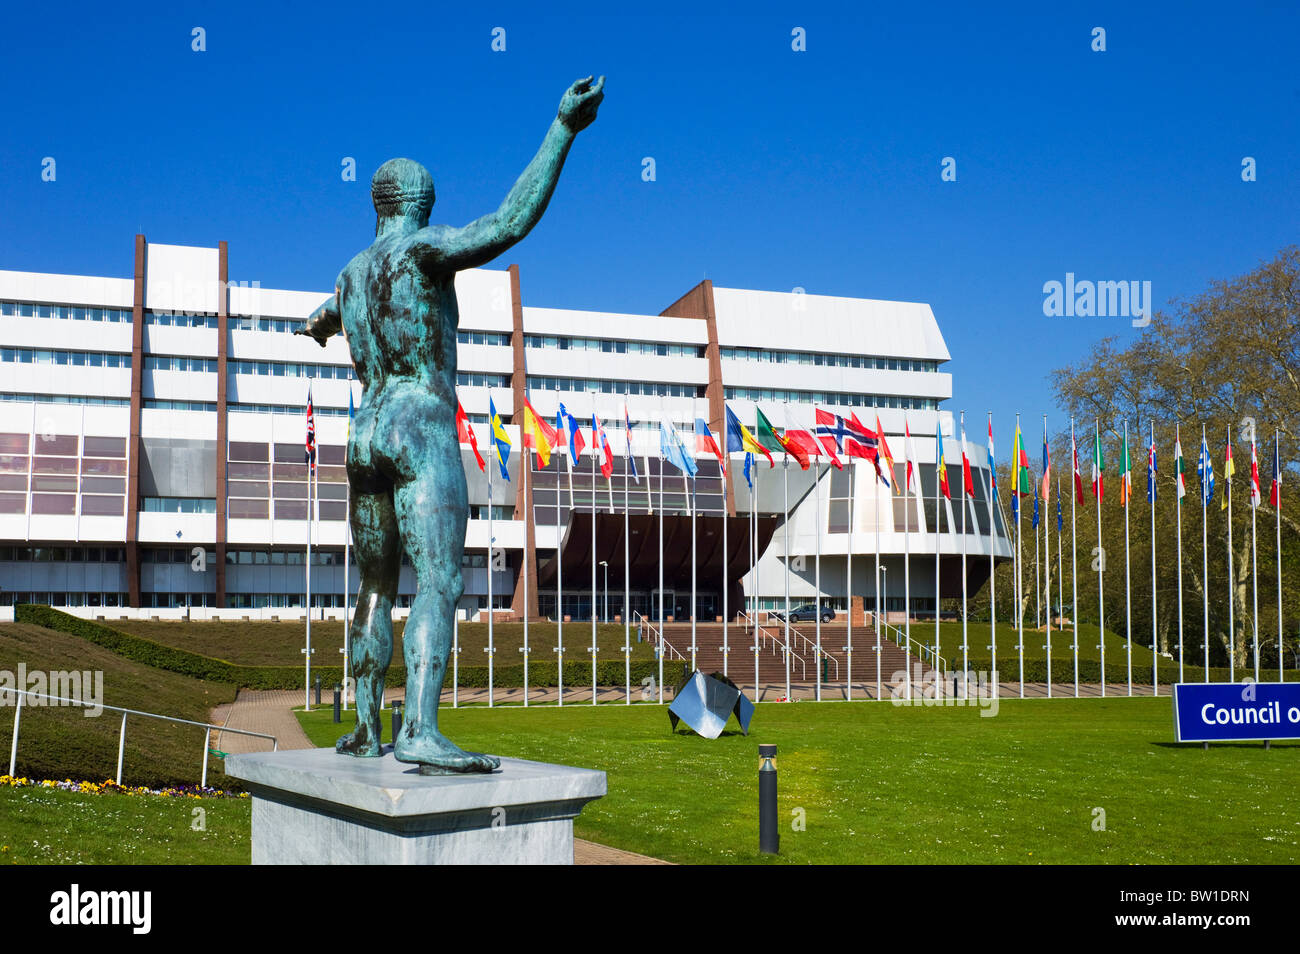 Greek statue of Poseidon - Neptune and Council of Europe building, Palais de l'Europe, Strasbourg, Alsace, France - Stock Image